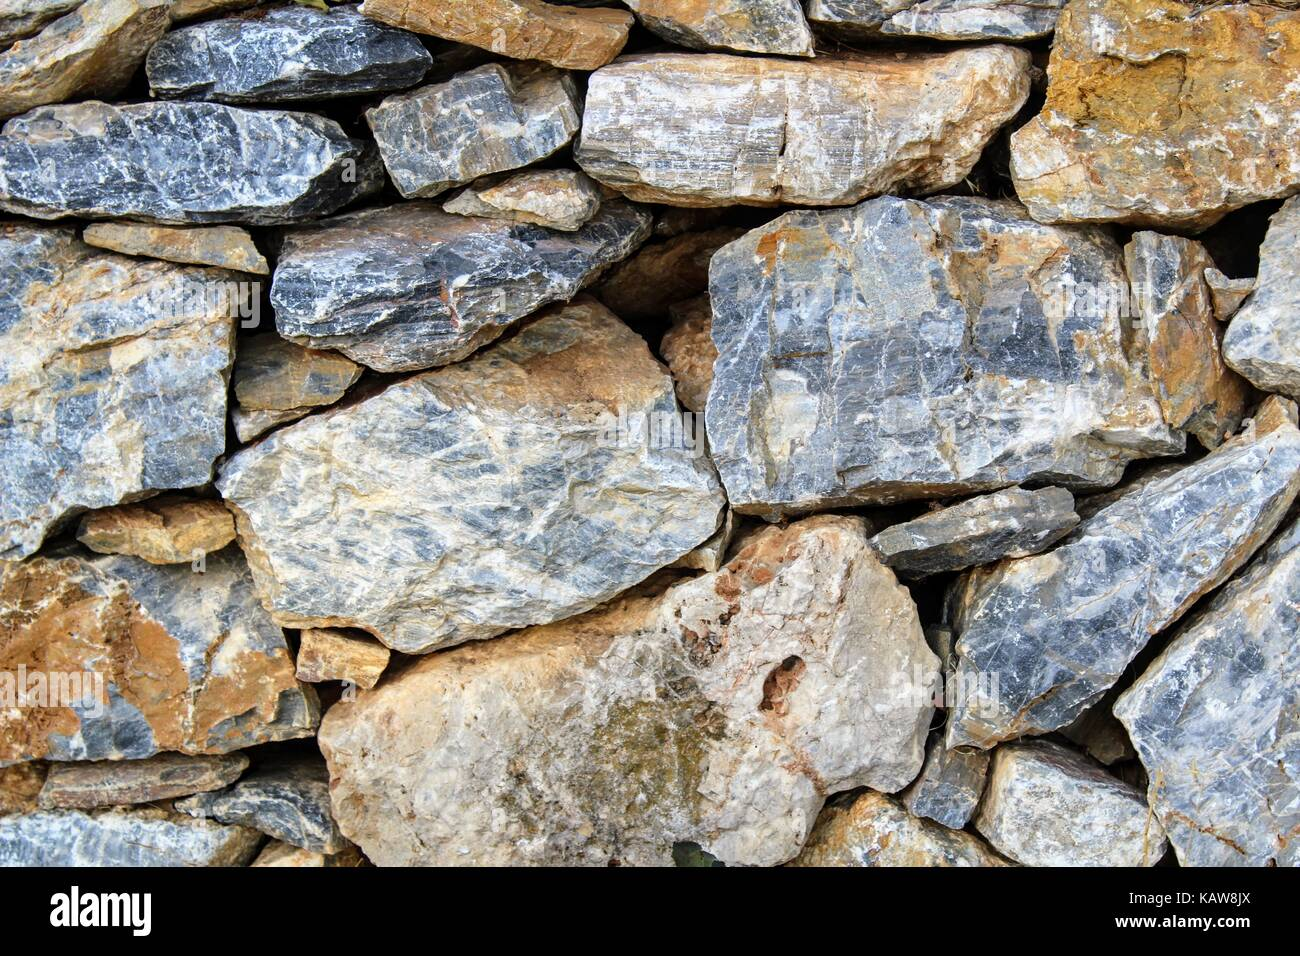 Fragment of the masonry of the castle wall in Alanya (Turkey), which can be used in graphic design. - Stock Image